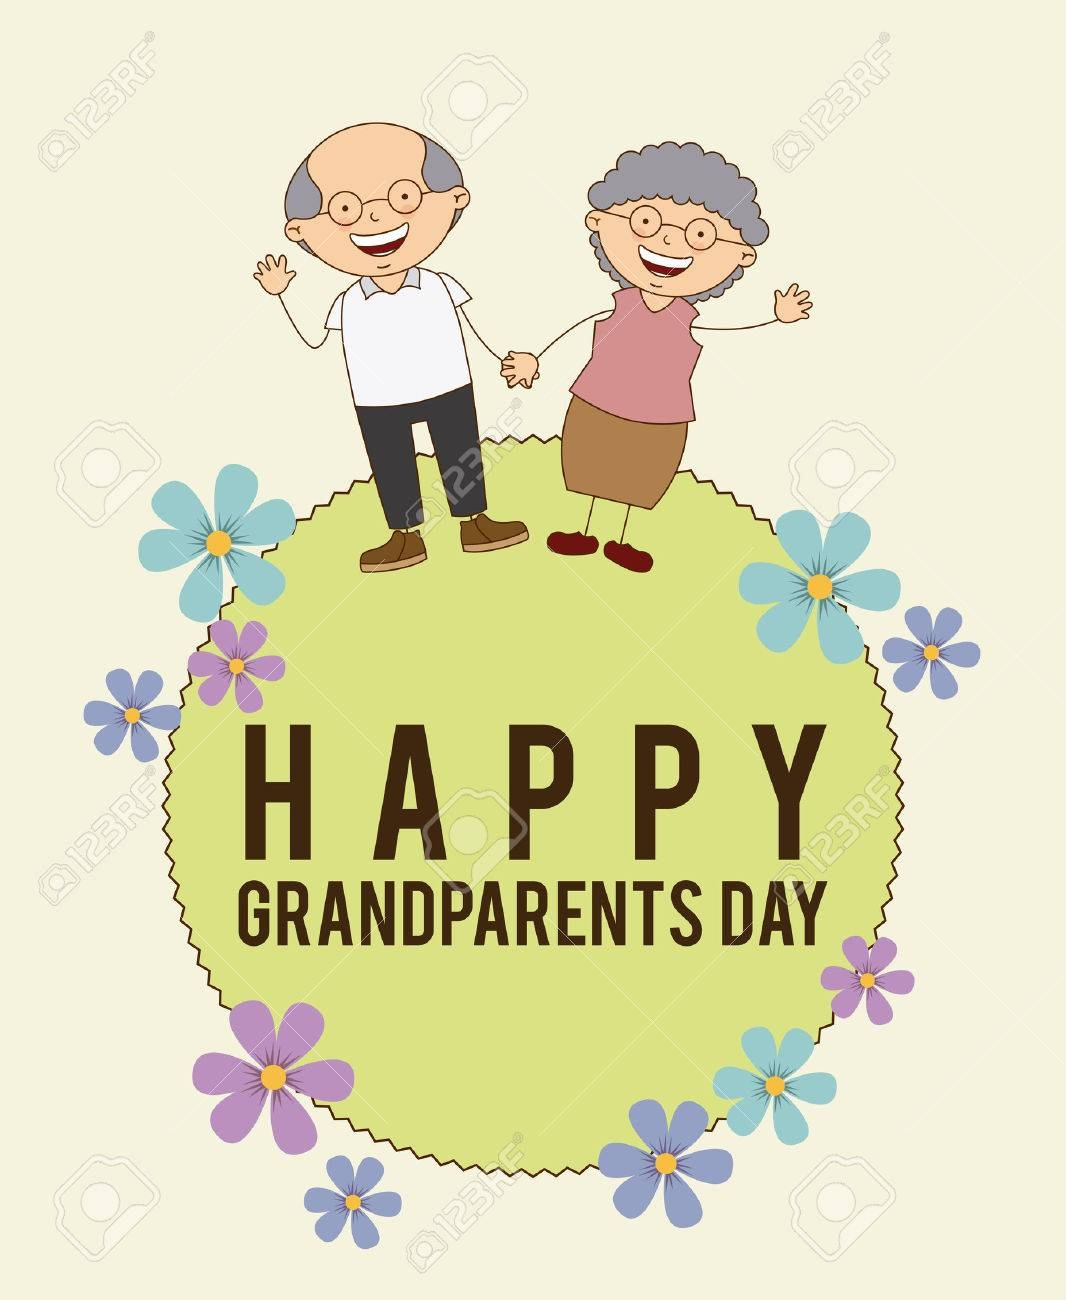 When Is Grandparents Day 2019 Grandparents Day 2020